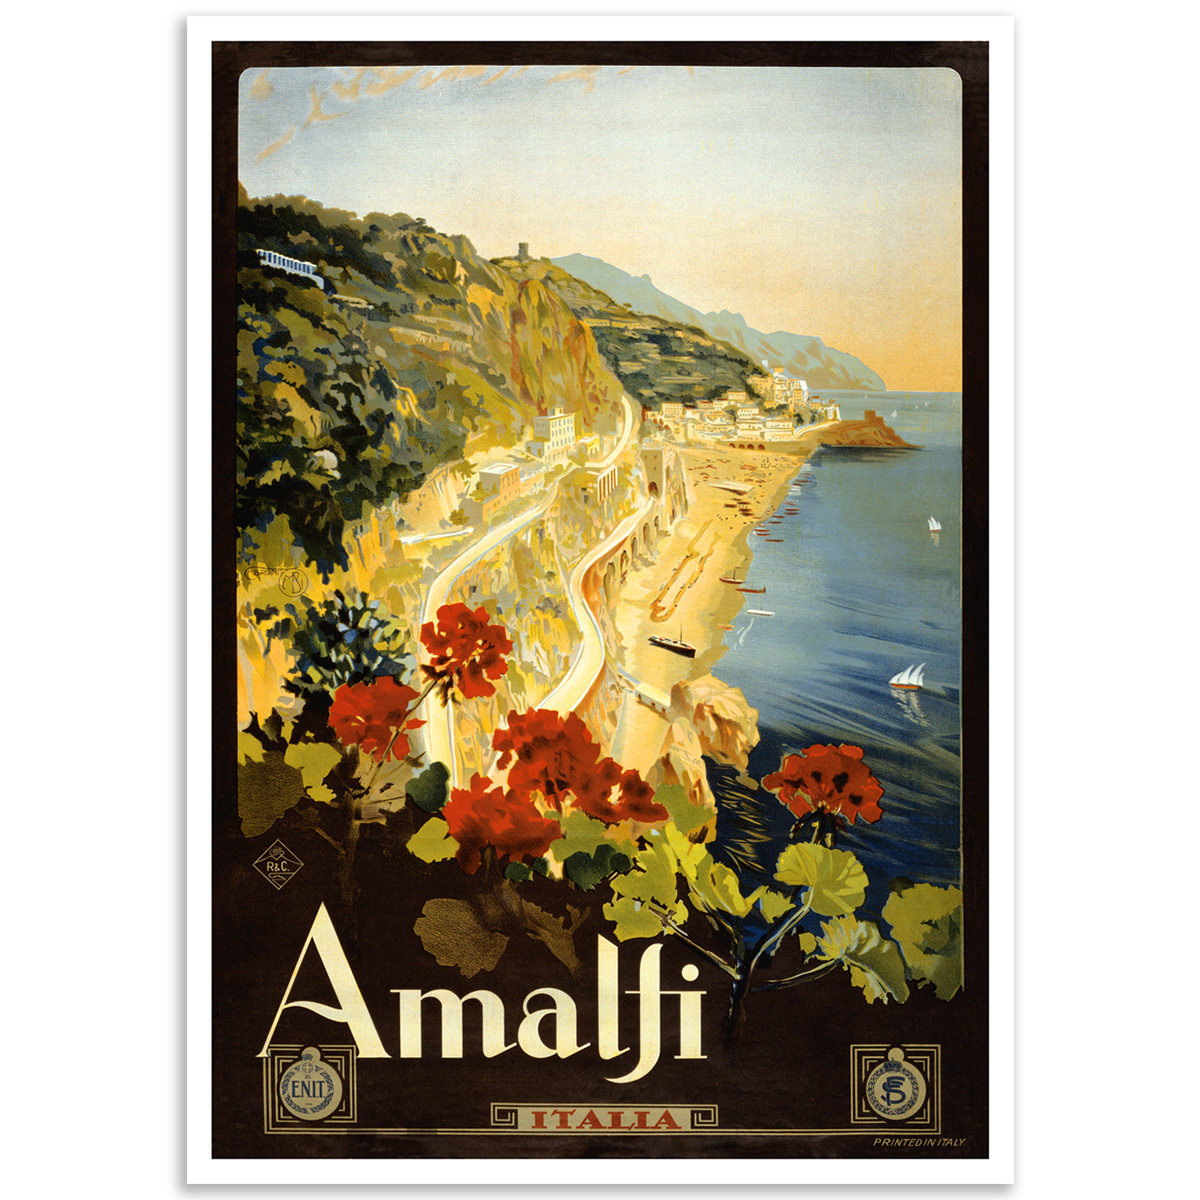 Vintage Travel Trailers: Vintage Italian Travel Poster